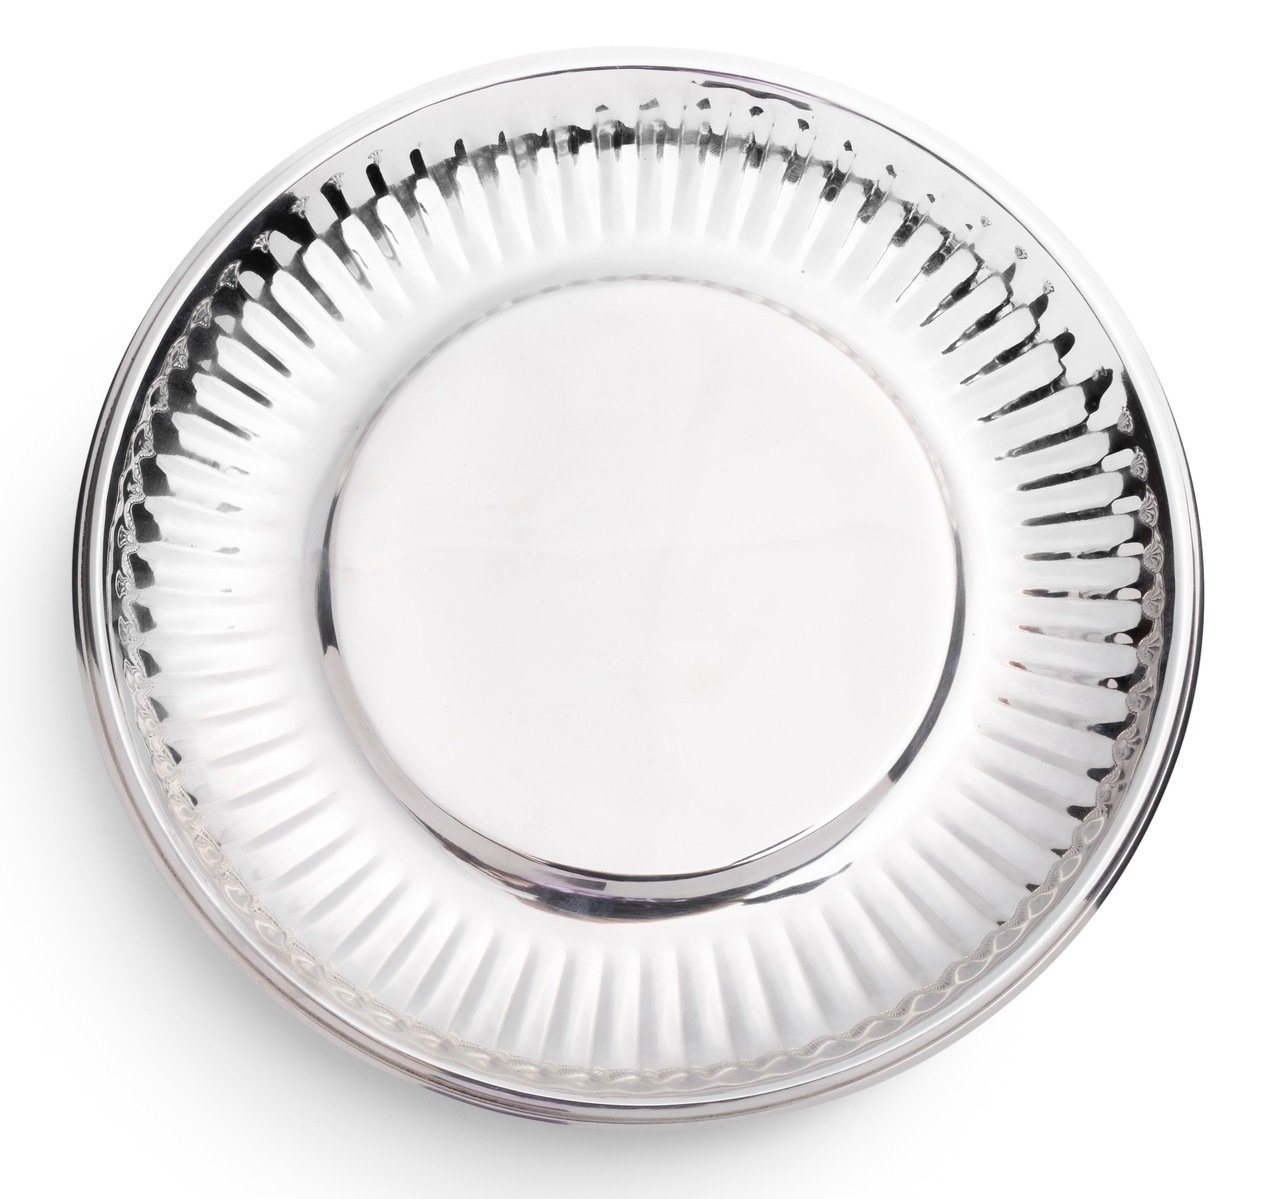 "Siren Song ""Paper Plate"" in Stainless Steel - Small 